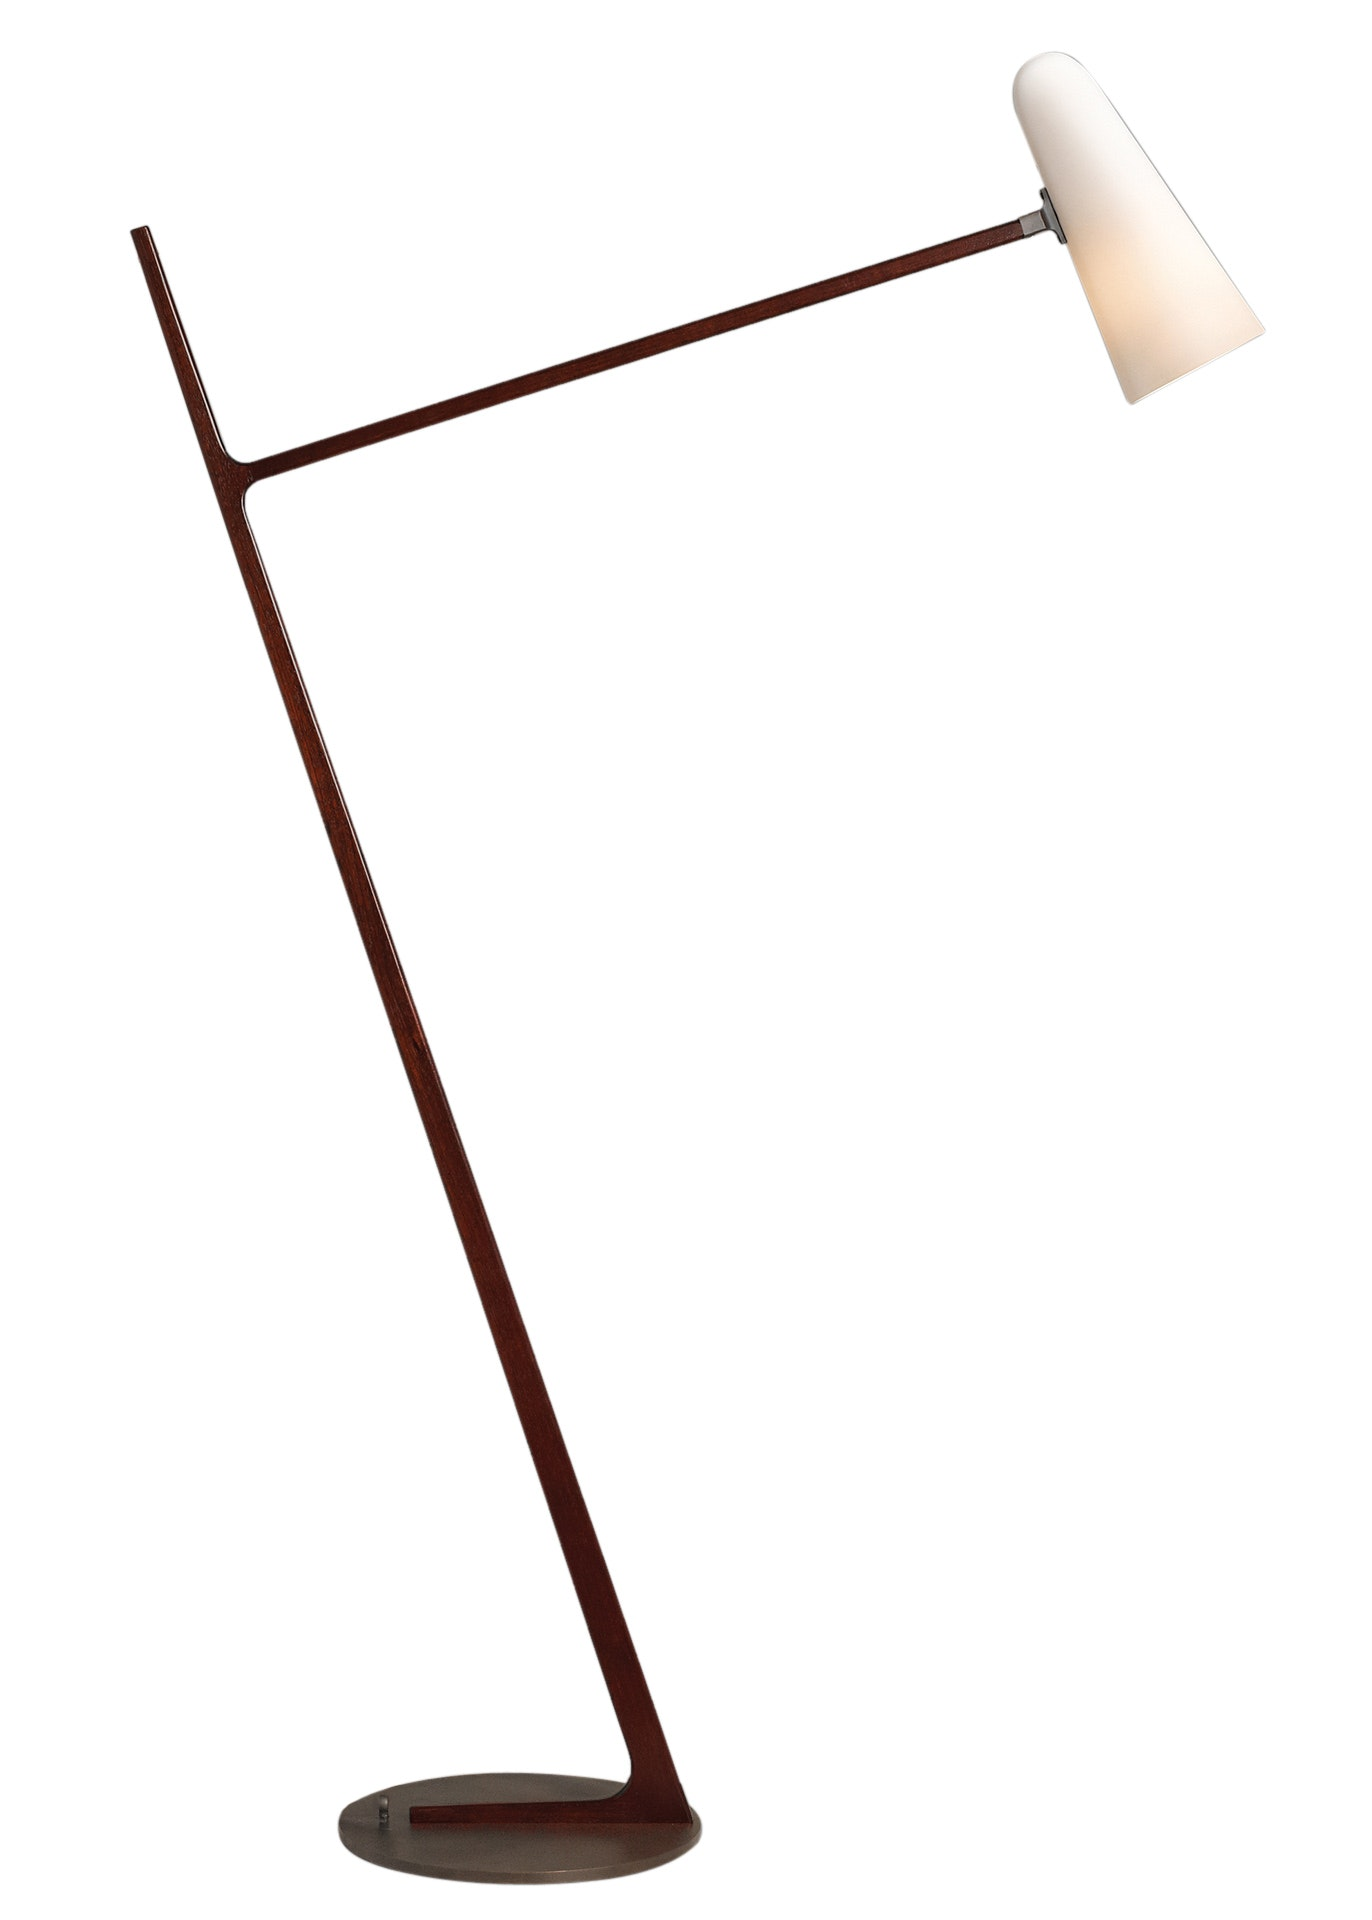 5 Modern Floor Lamps For Modern, Stylish Home Design 2 modern floor lamps 5 Modern Floor Lamps For Modern, Stylish Home Design 5 Modern Floor Lamps For Modern Stylish Home Design 2